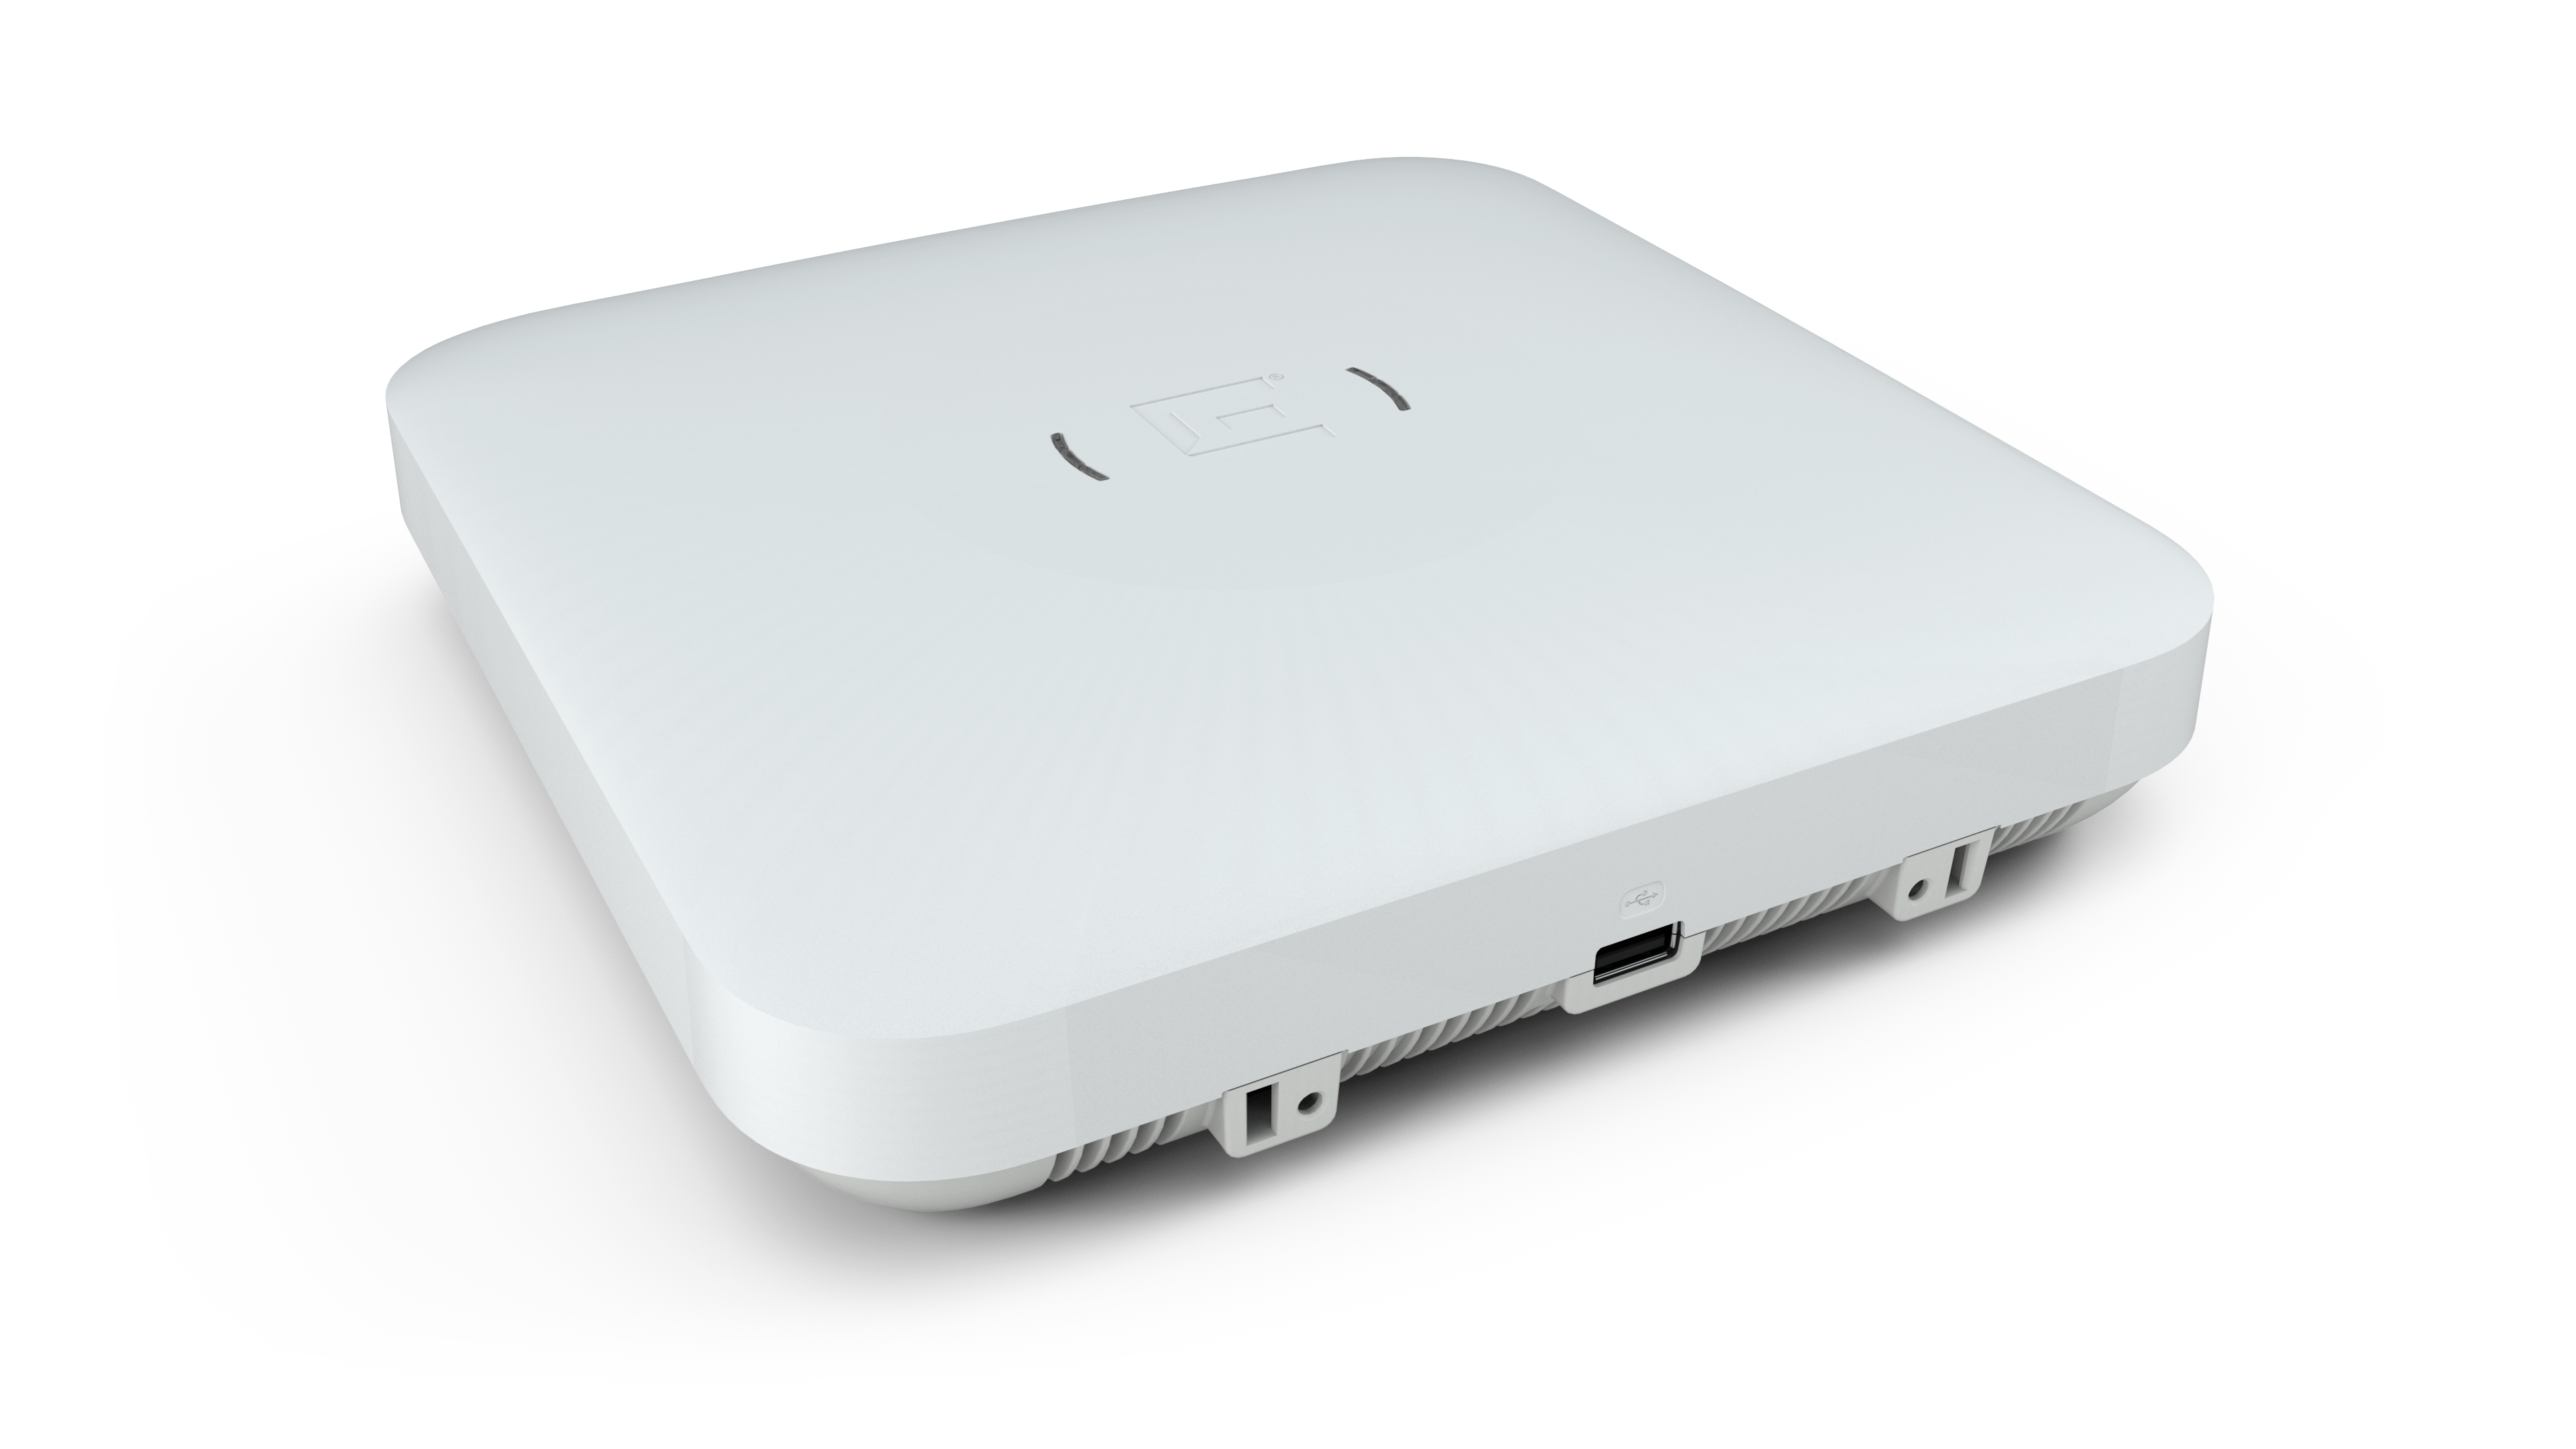 neuer Hochleistungs-WLAN Access Point nach 802.11ax Standard (WiFi 6)